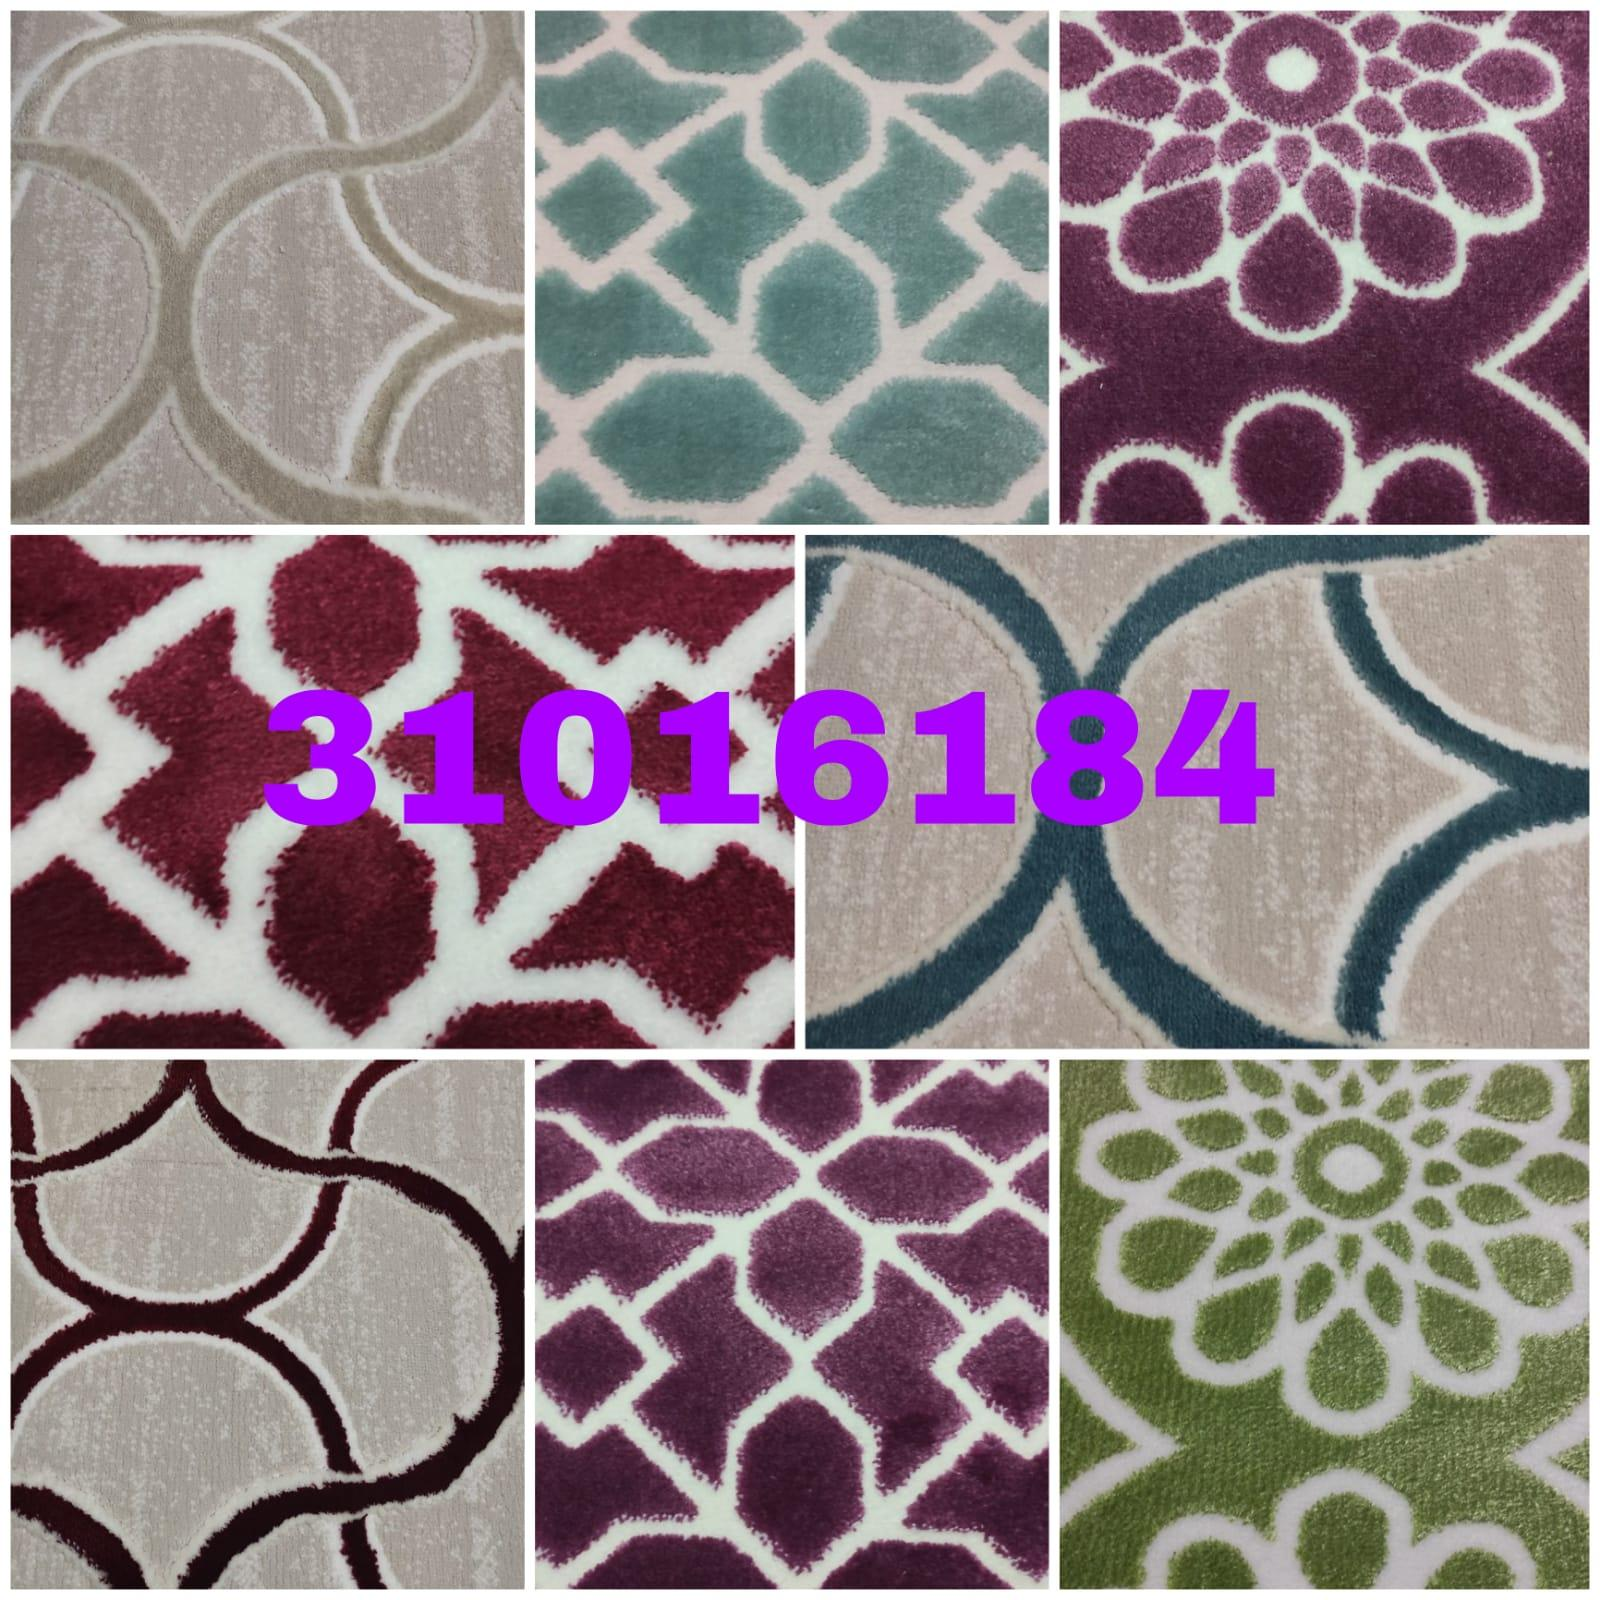 We have all type of CARPET, kids room baby carpet(